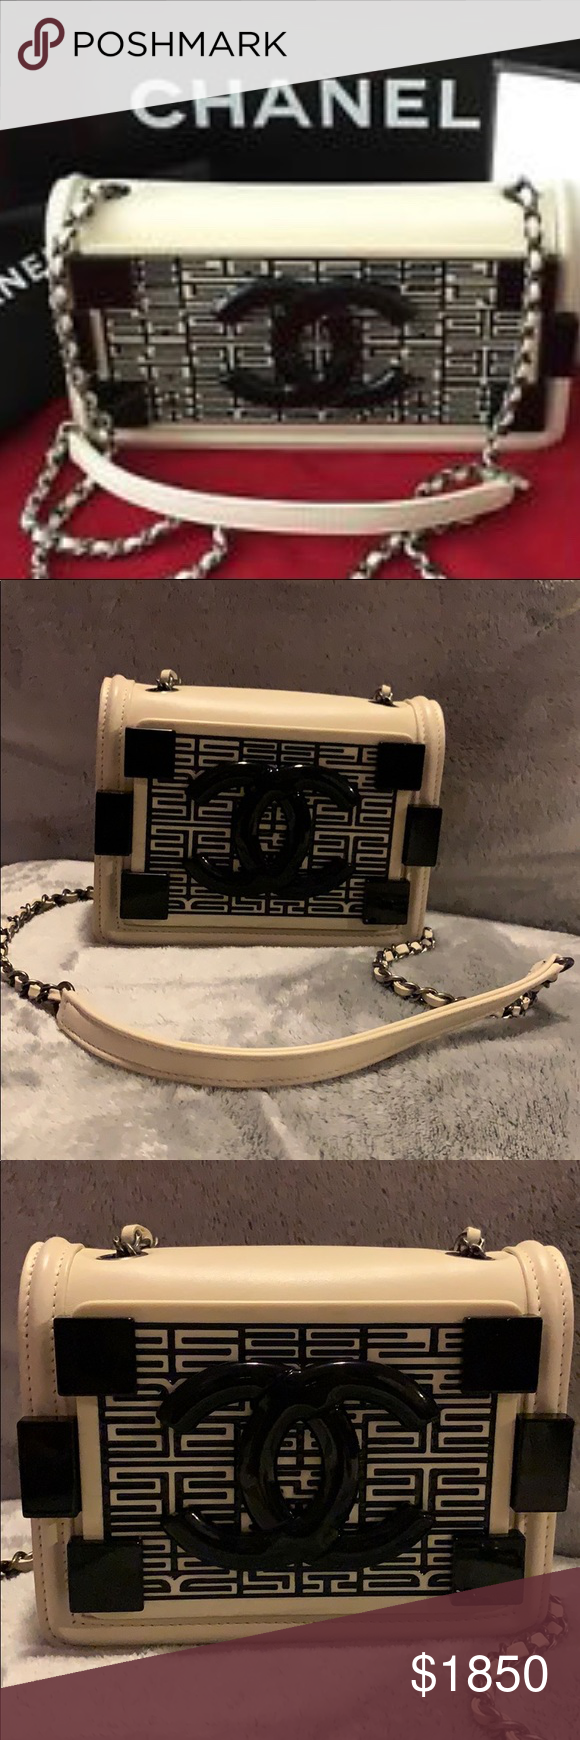 c68bbf9004ac Chanel Boy Brick Flap Bag Dark White ... Boy Brick Chanel Seamless Dark  White Lambskin & Plexiglass Mini. Slight wear on edges but bag looks like  brand new.